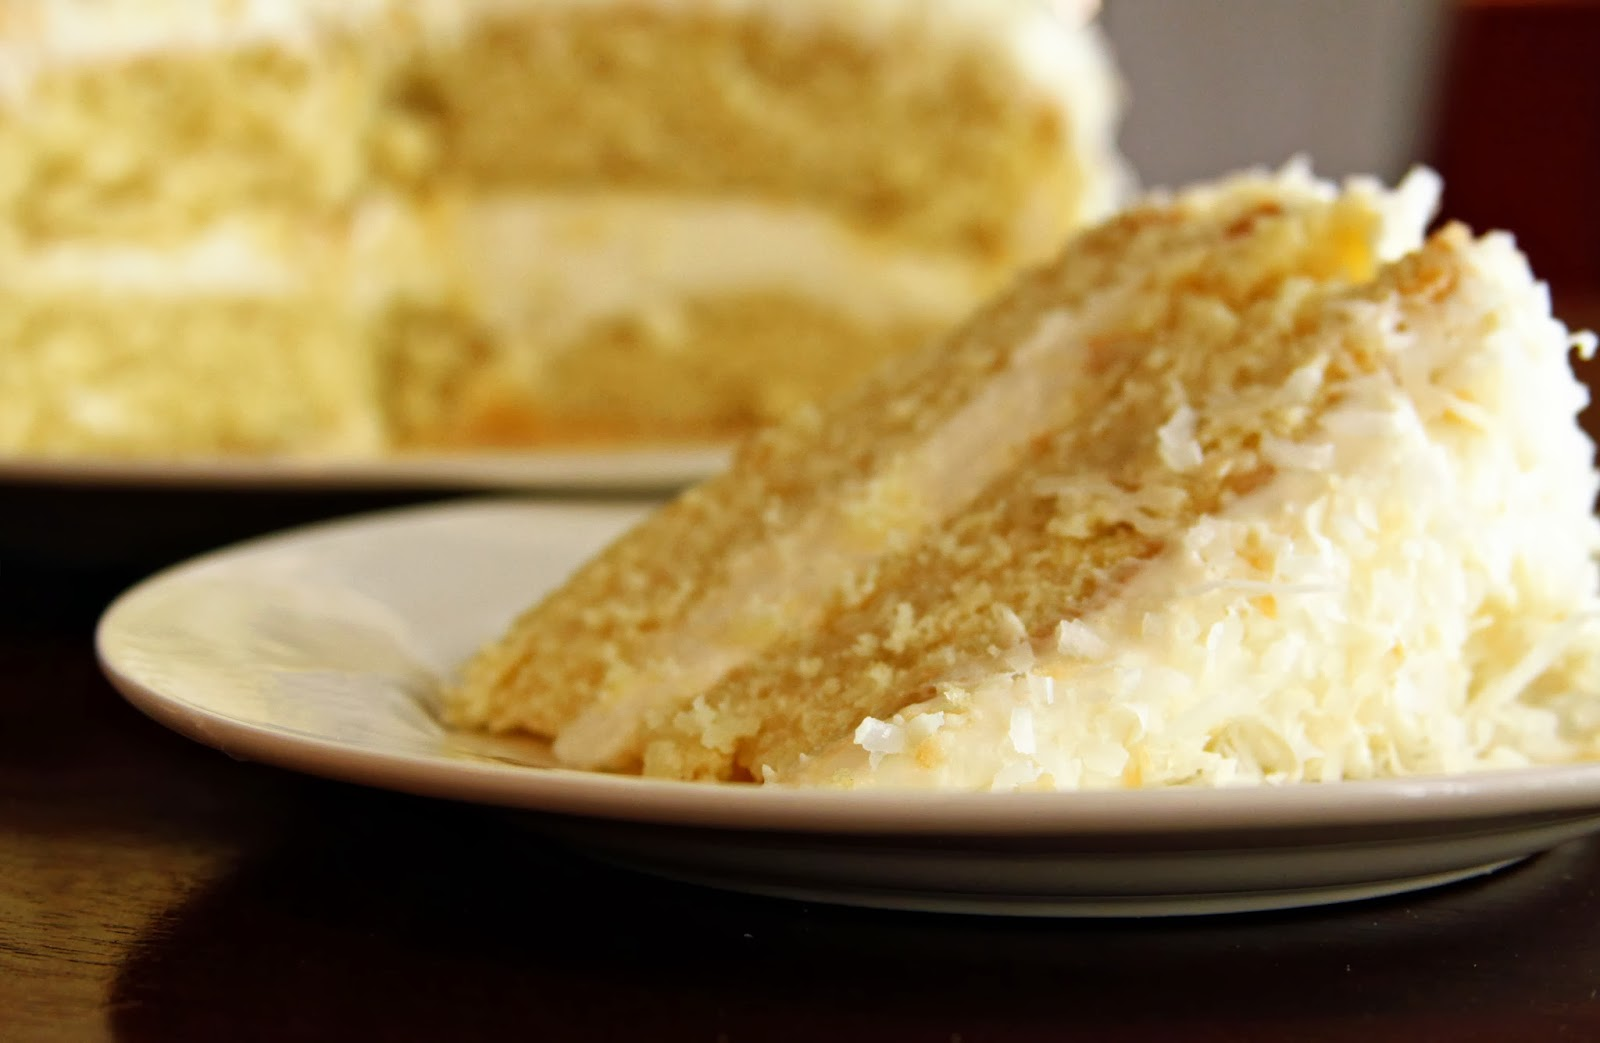 Izan's Recipes: Coconut Cream Cake with Coconut Cream Cheese Frosting